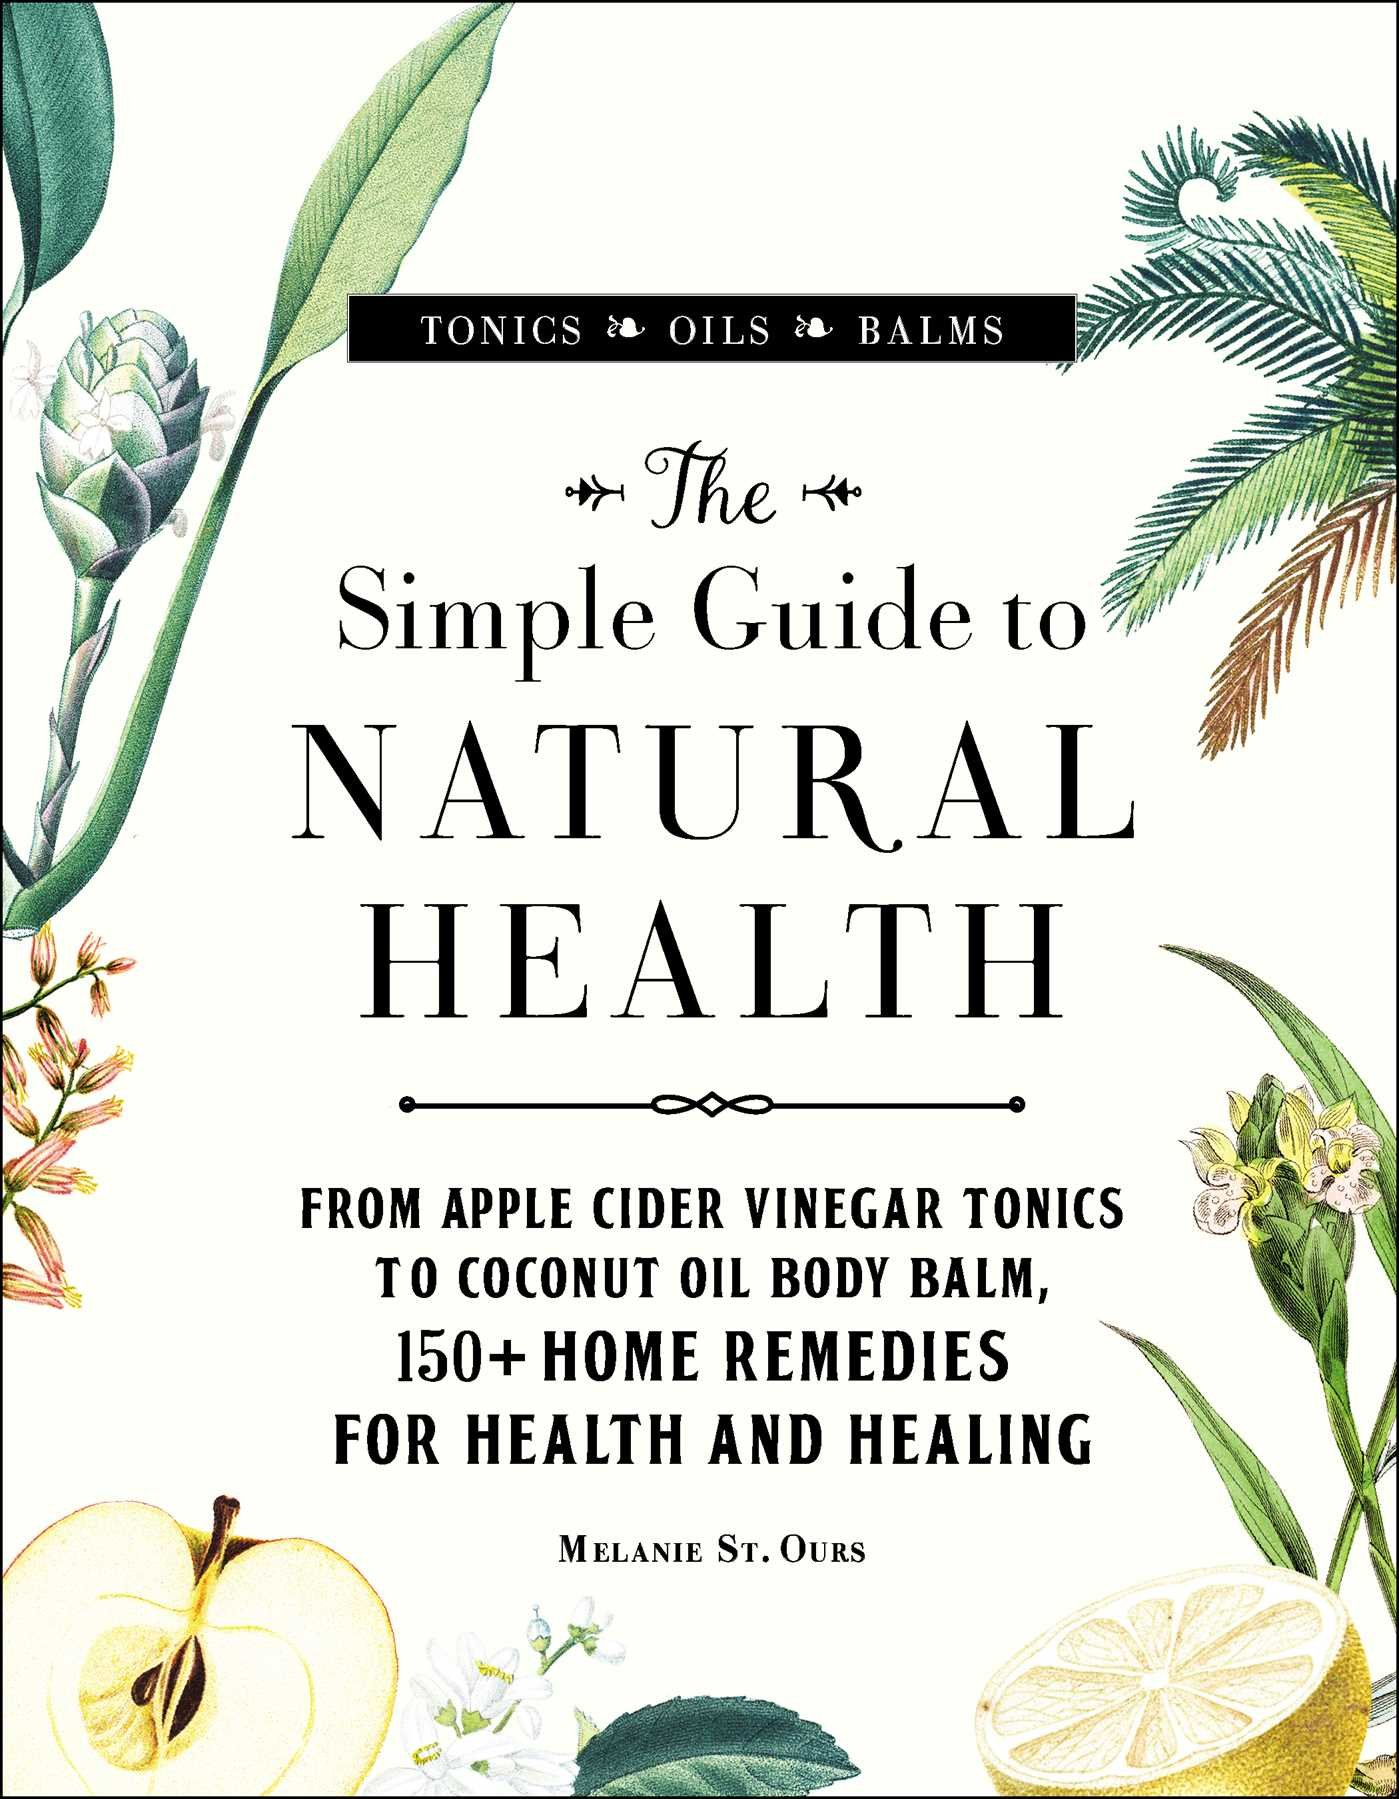 Simple Guide Natural Health Remedies product image